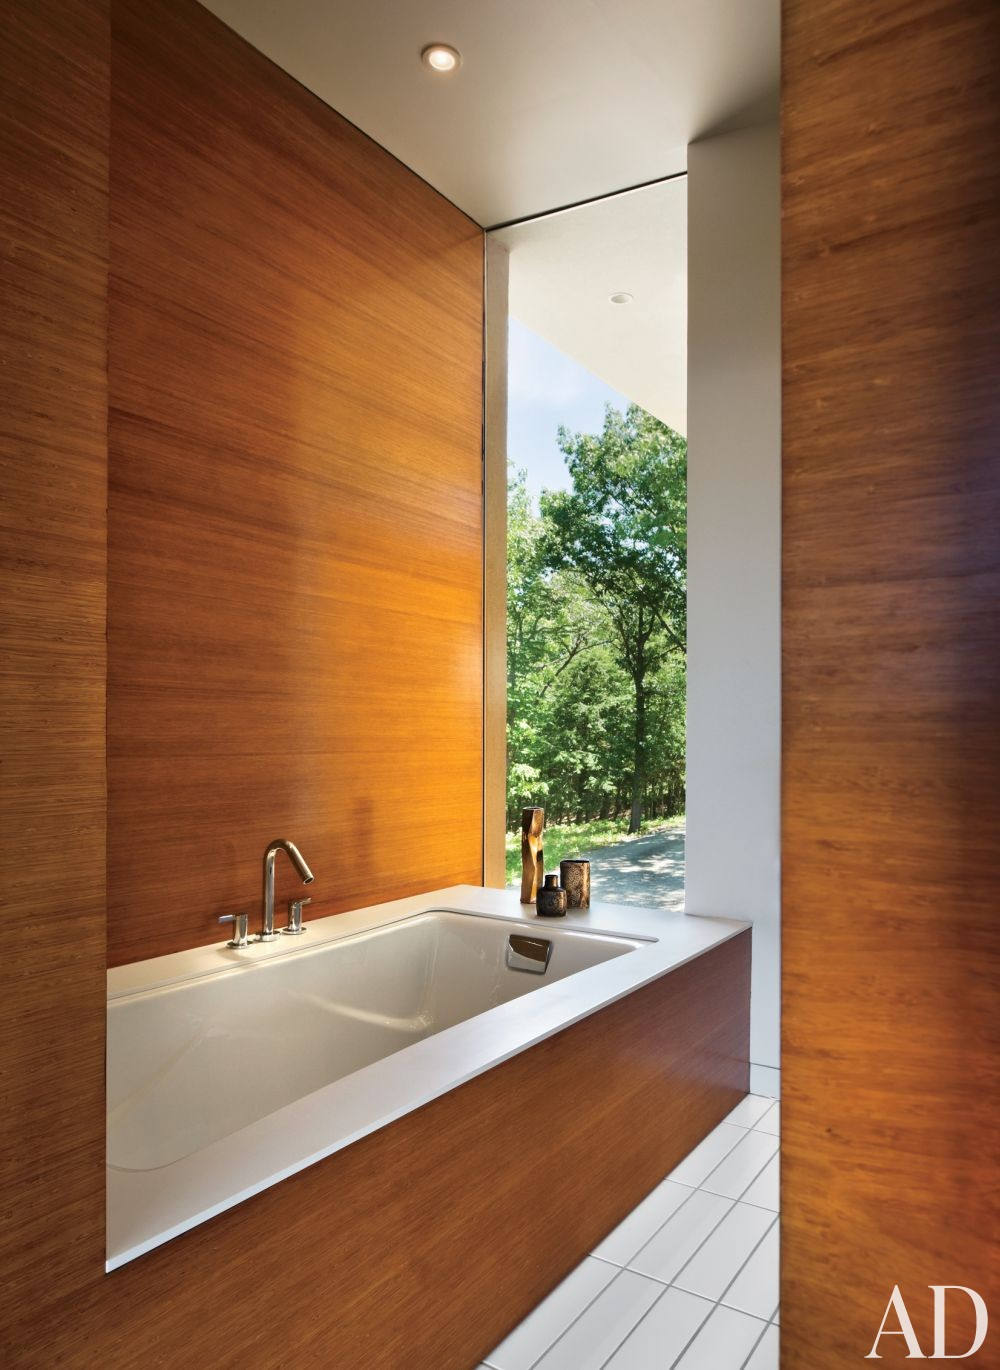 Modern Bathroom by Joel Sanders Architect and Joel Sanders Architect in Hudson River Valley, New York